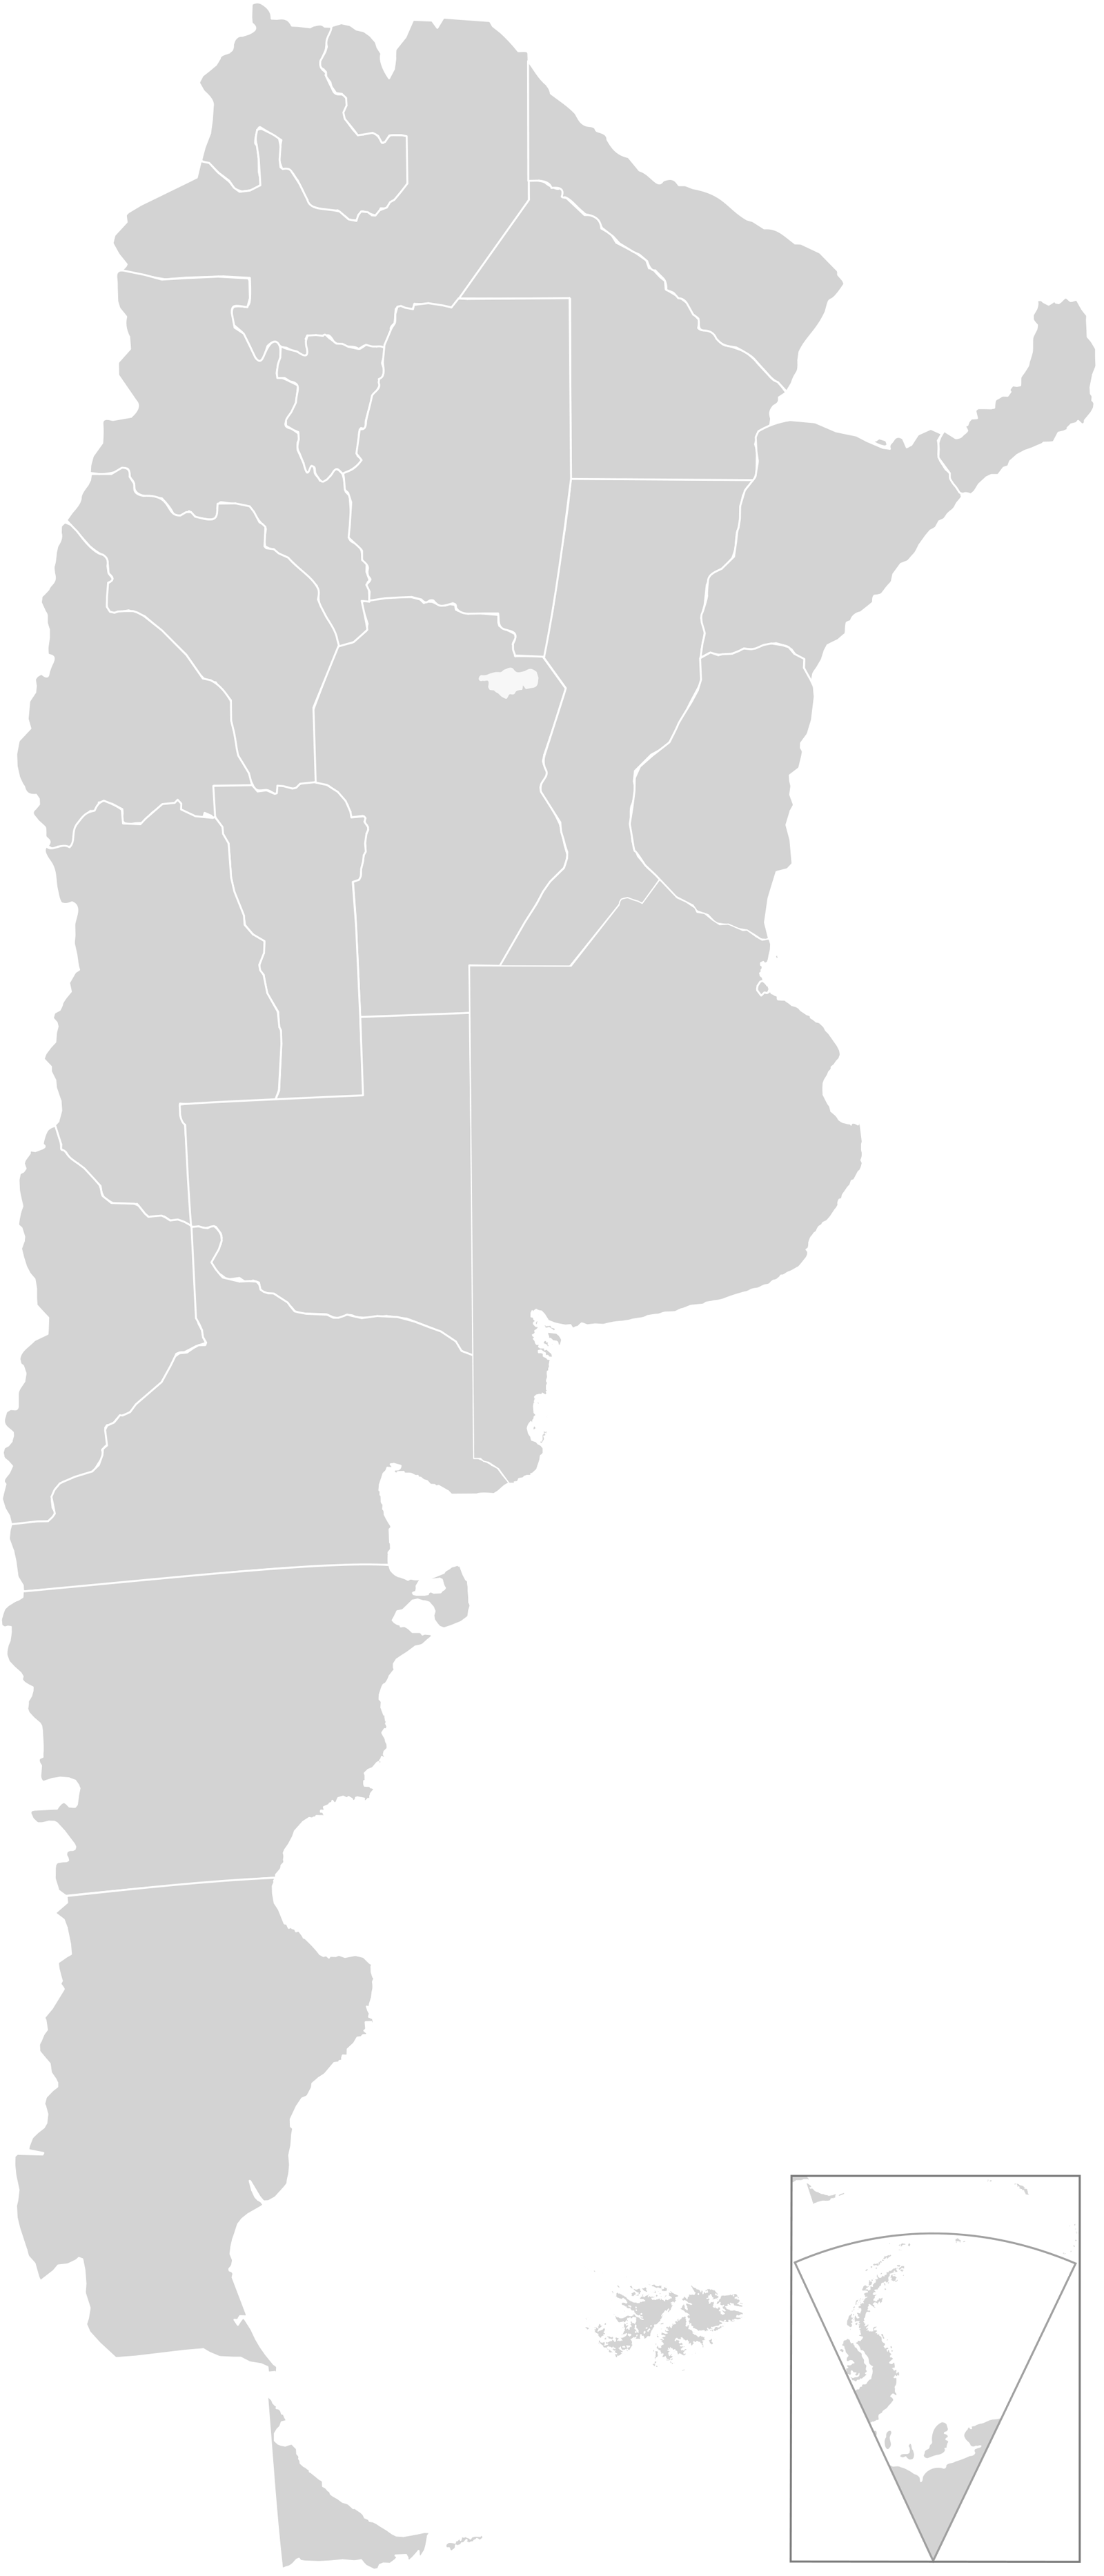 Where Is Argentina Argentine Republic Maps Mapsofnet - Argentina map png